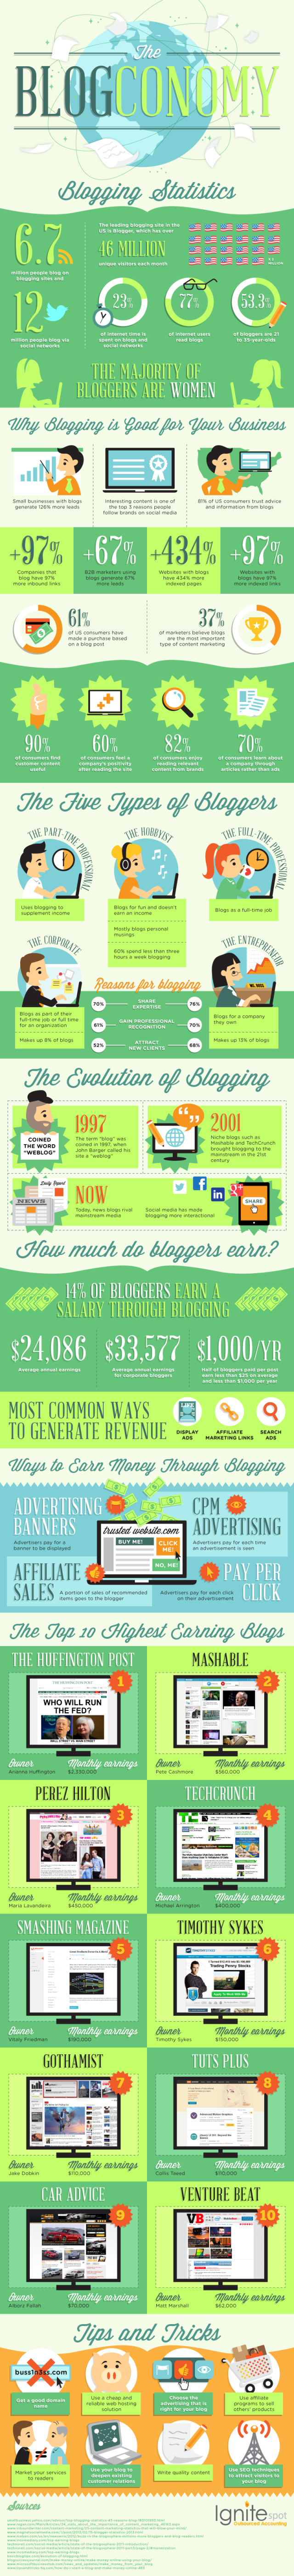 Five Types Of Bloggers